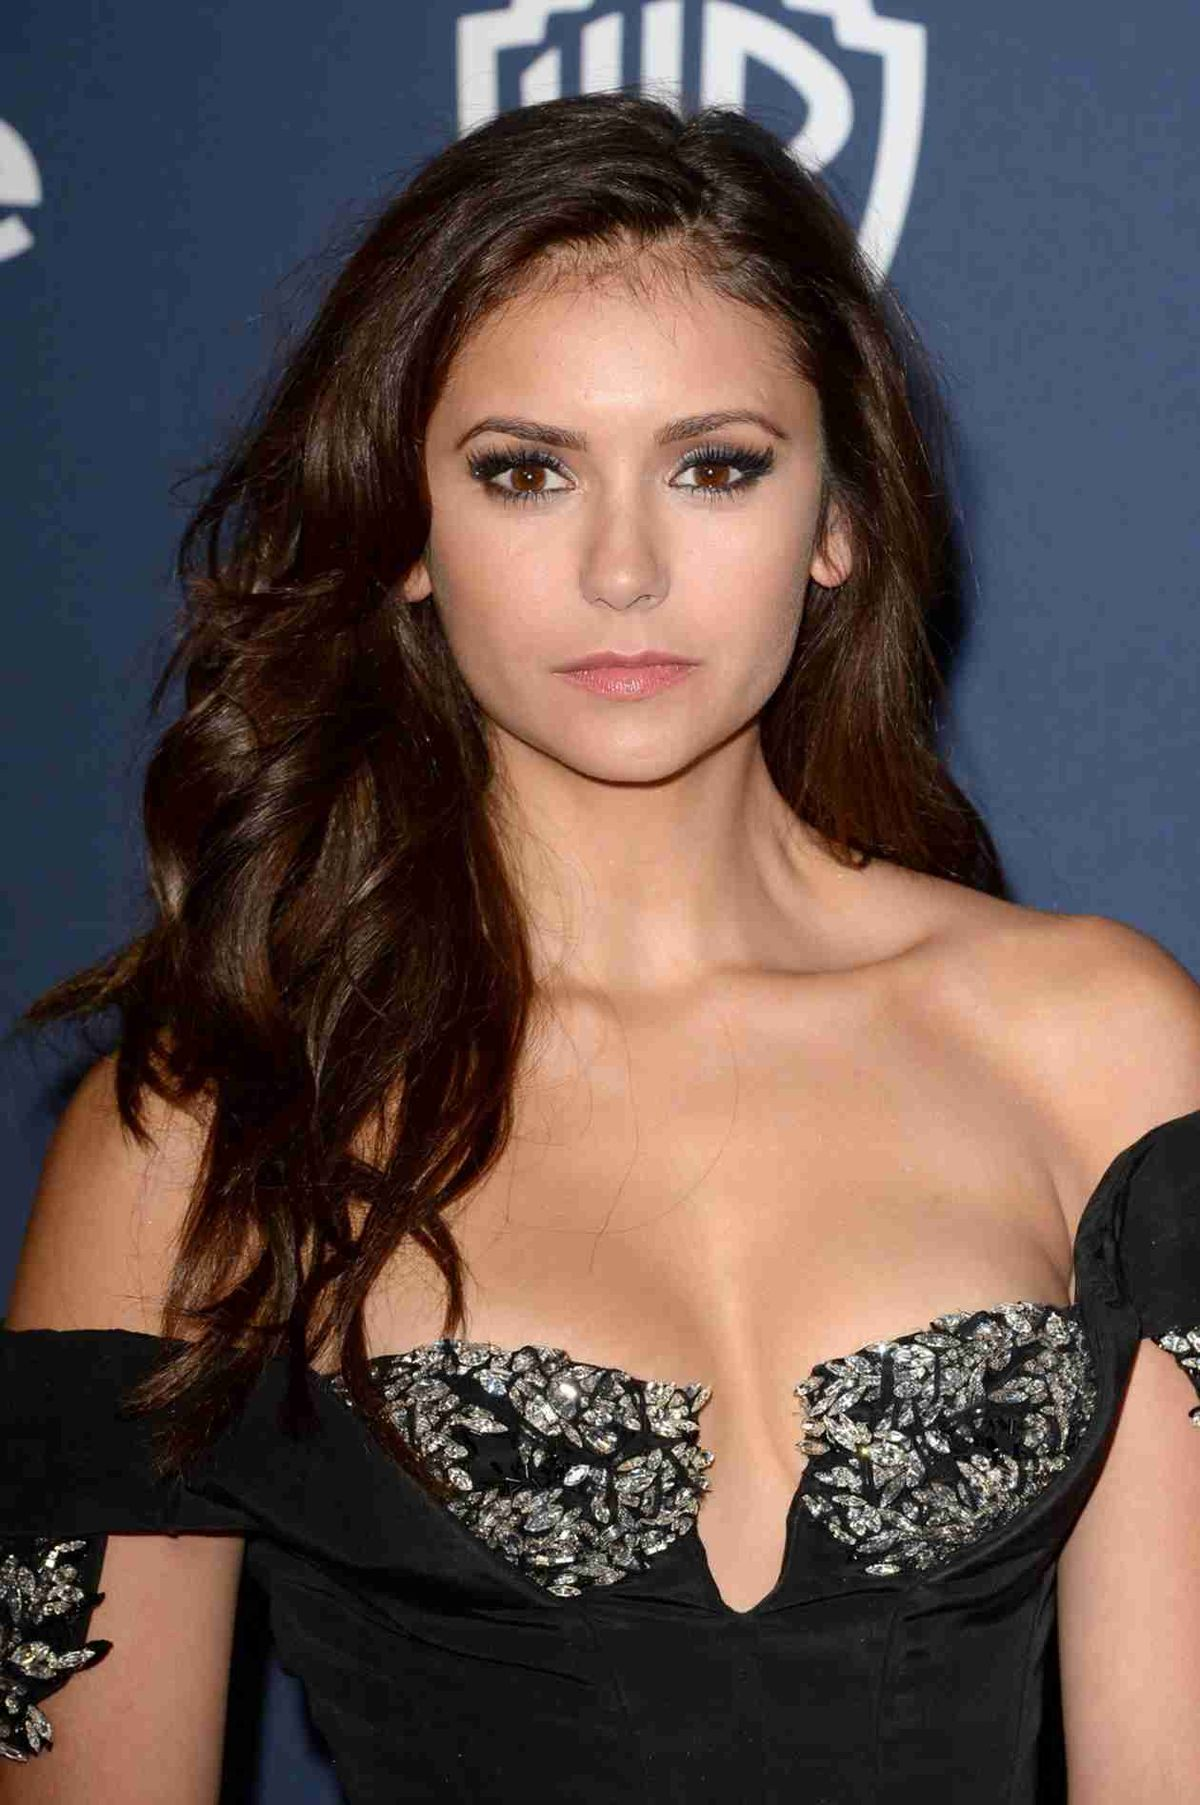 Nina Dobrev #NinaDobrev #TopCelebrityTV #Hollywood #Actress #Celebrity #Entertainment #TVD #Movie #Star